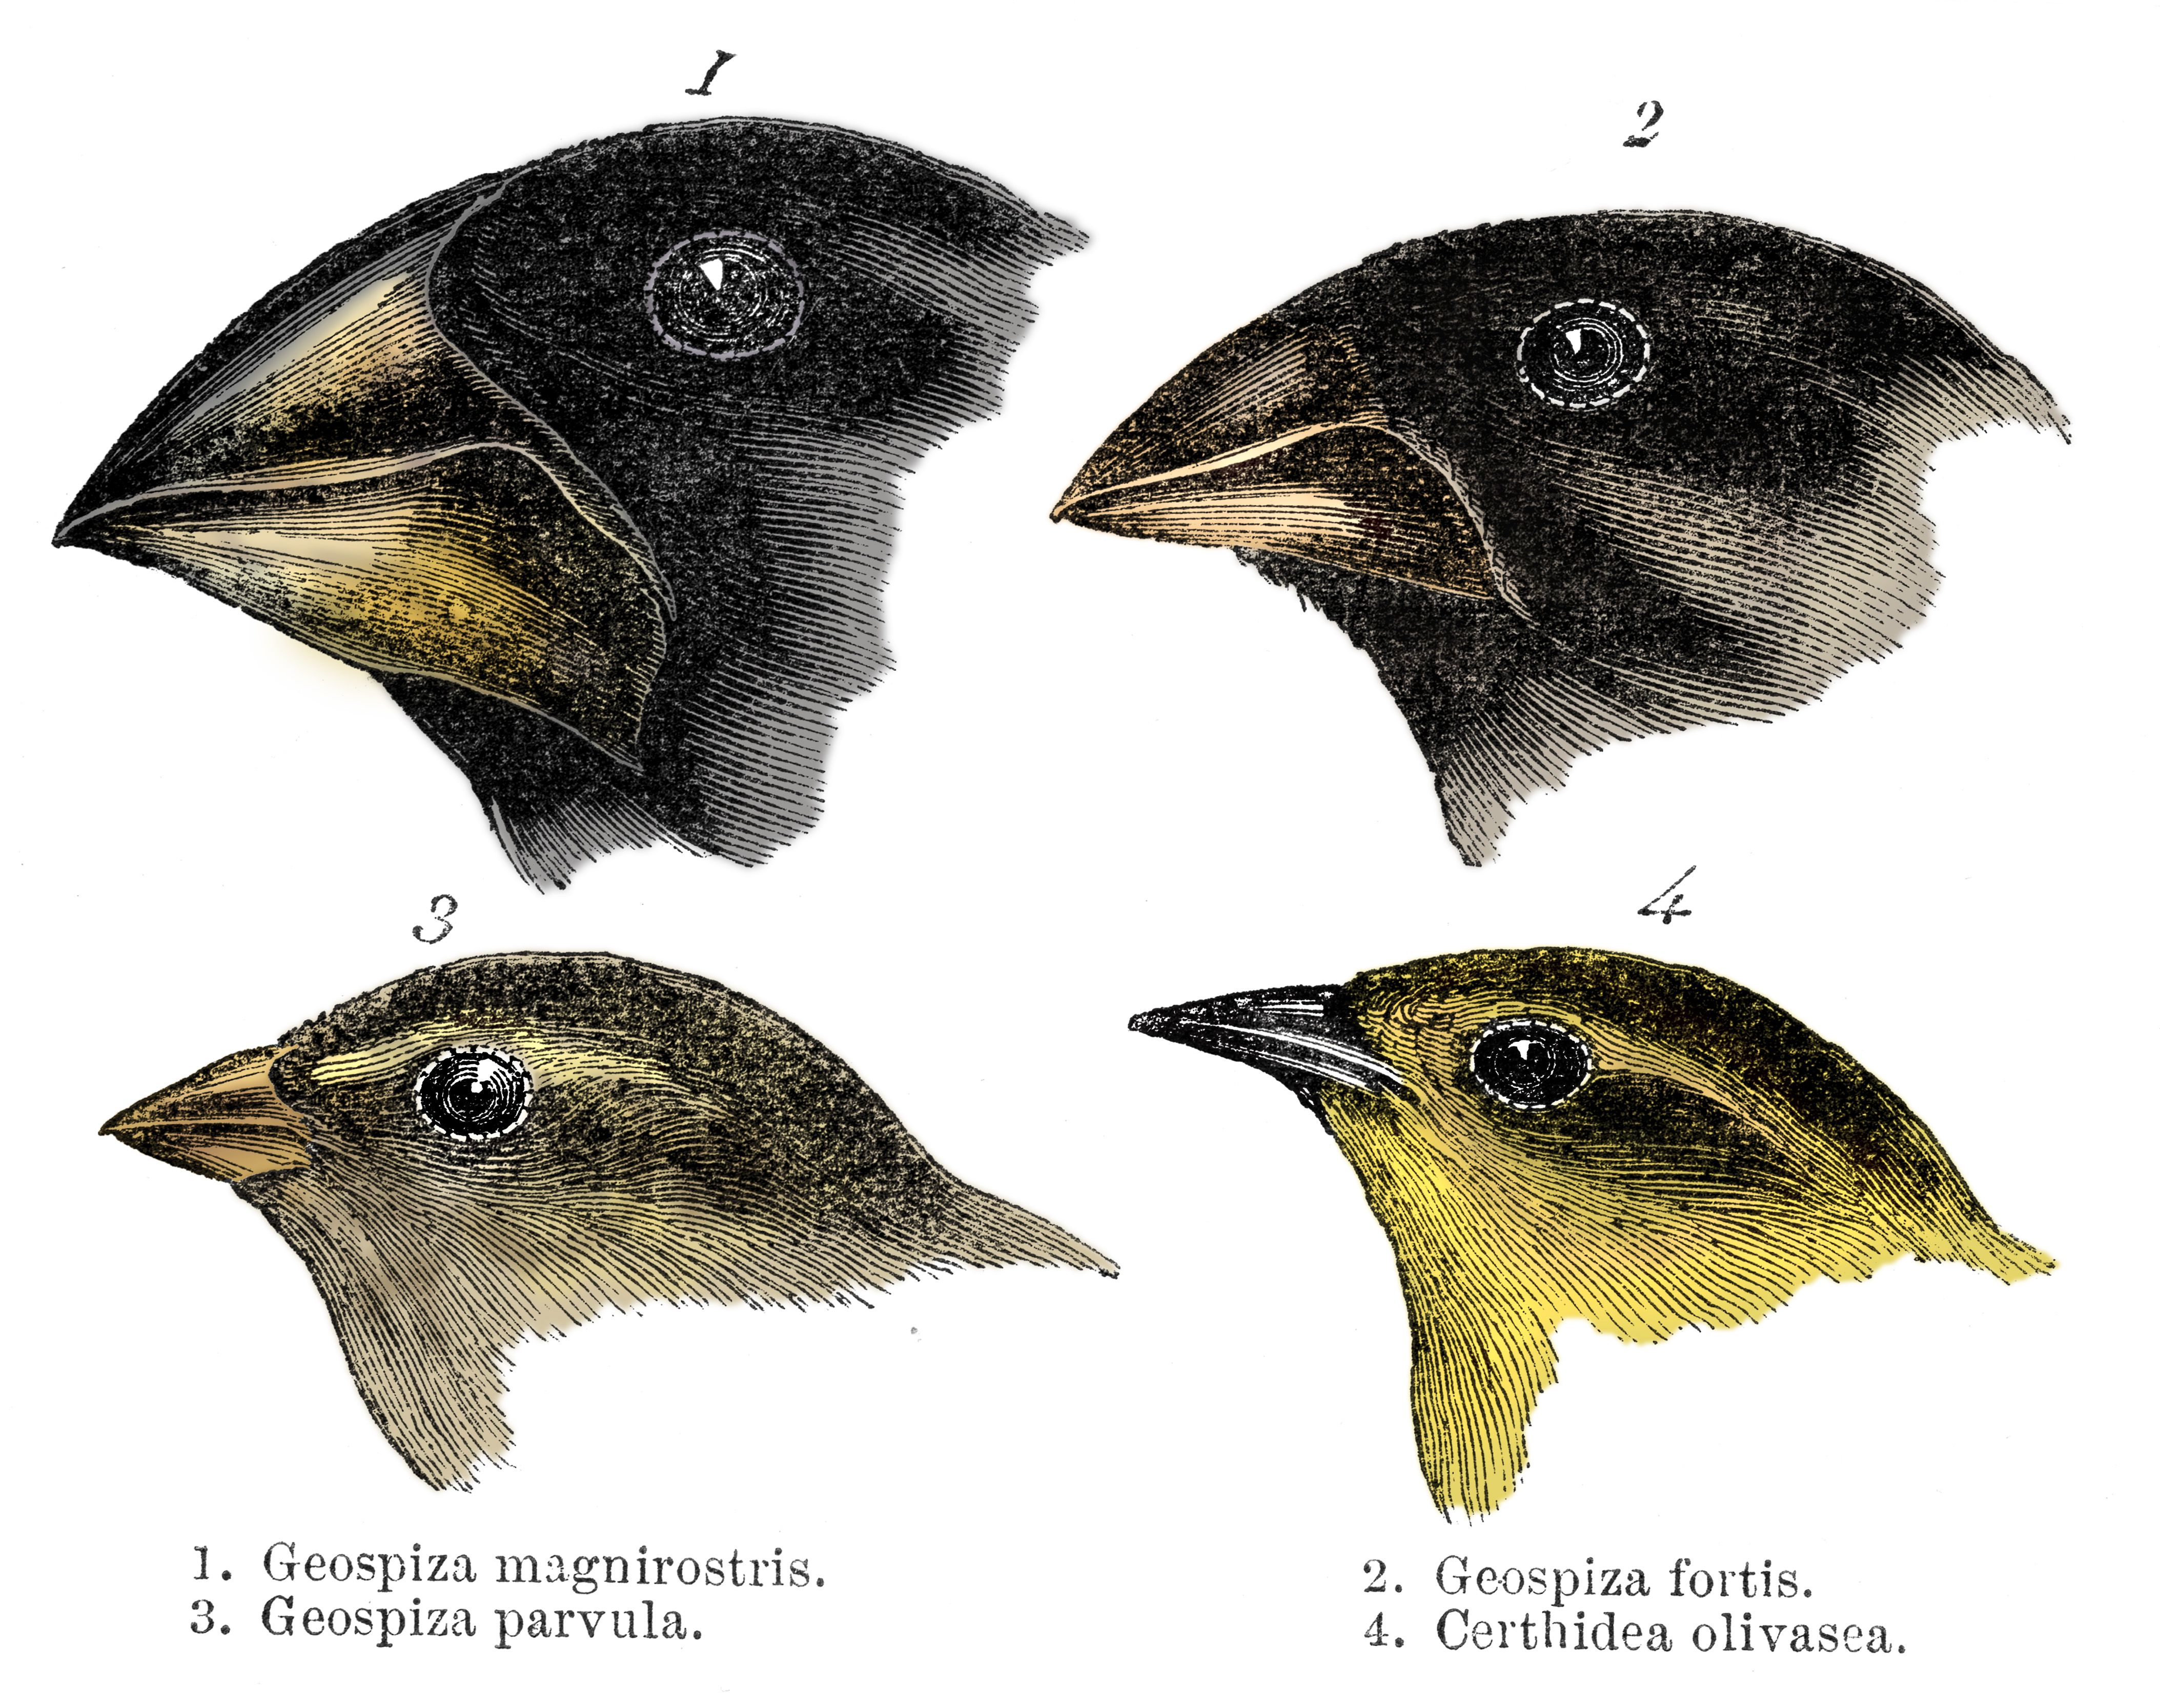 Charles Darwin S Finches And The Theory Of Evolution